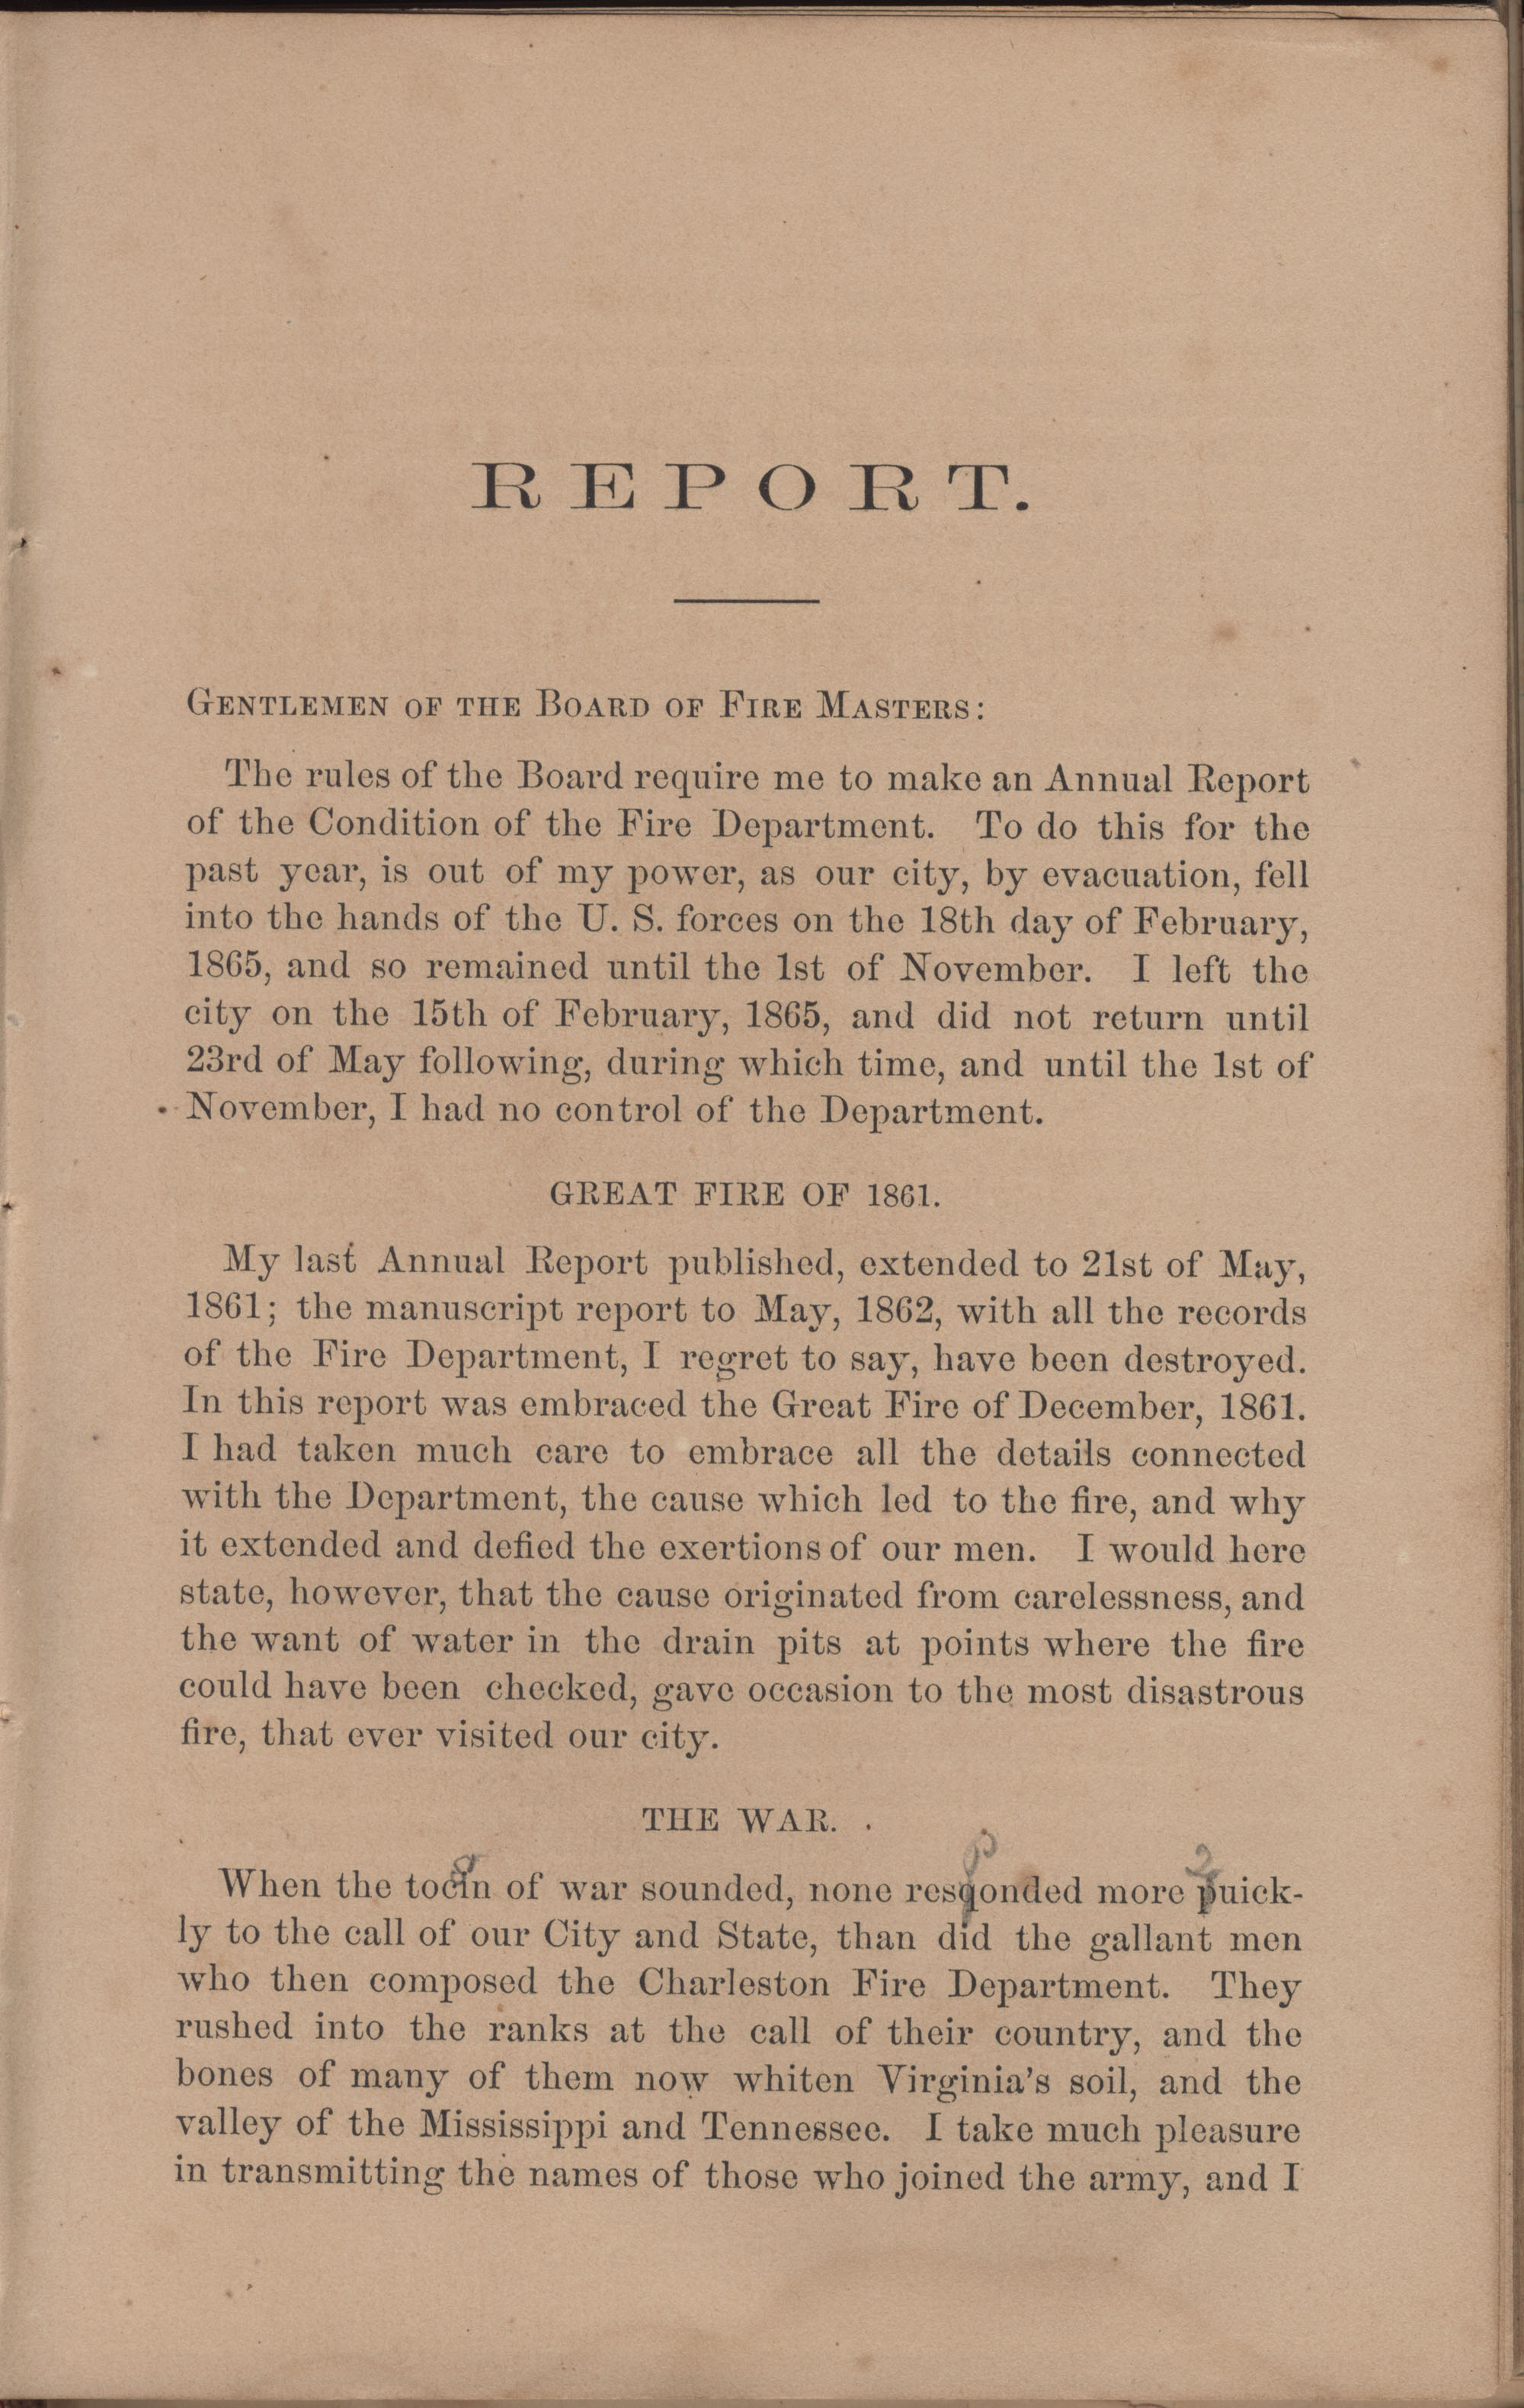 Annual Report of the Chief of the Fire Department of the City of Charleston, page 101